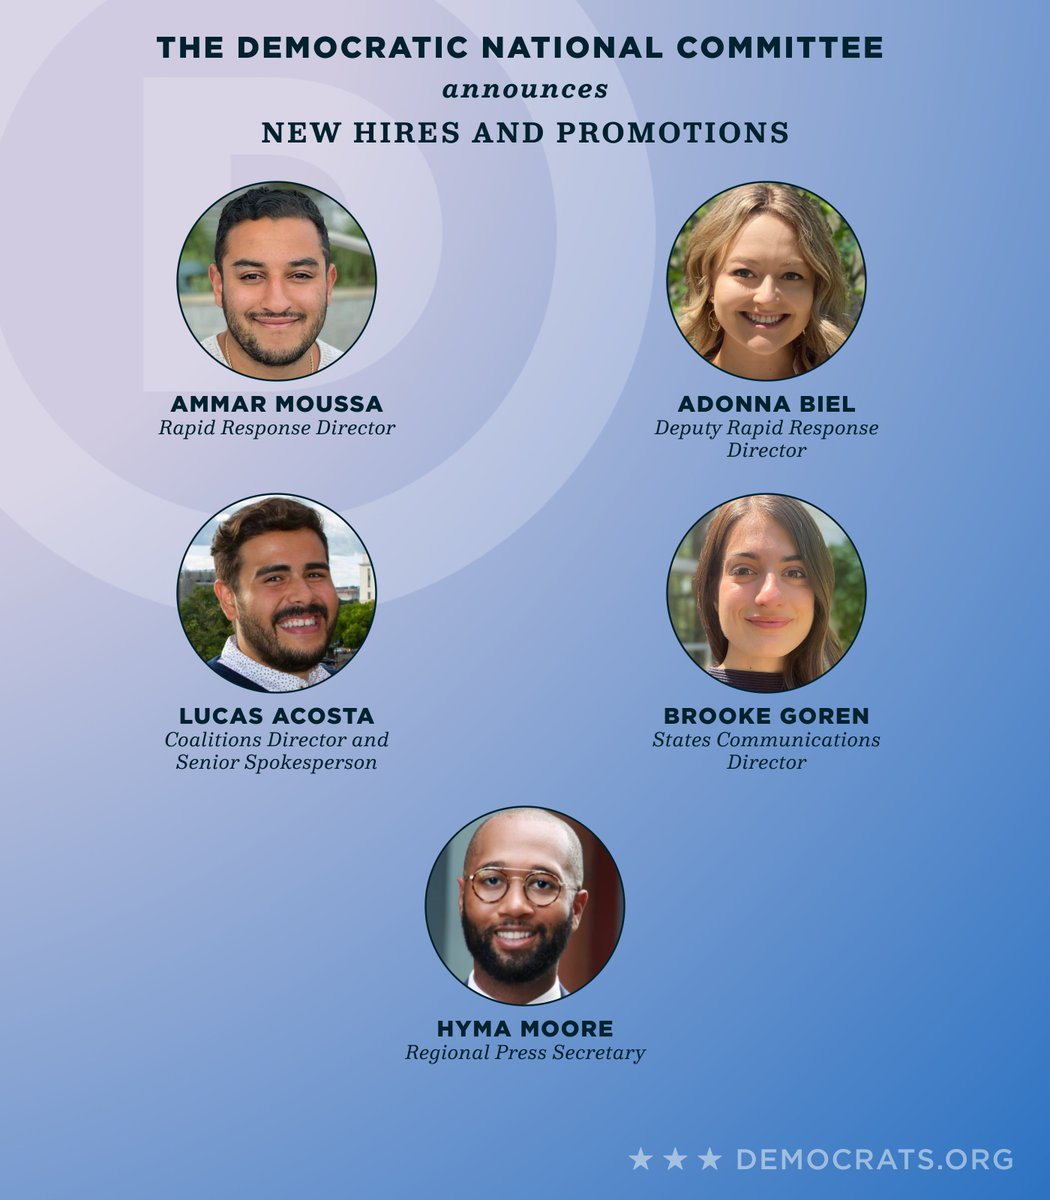 Our Communications Team is growing! Join us in congratulating our newest hires and promotions: @da_wessel, @Adonna_Biel, @BrookeGoren, @LucasRAcosta, @enriquegtzjr, @DPalder, @Hymamoore, @Cassidygeo, @ammarmufasa, and @Allyson_Bayless. https://t.co/FqpASIvgwv